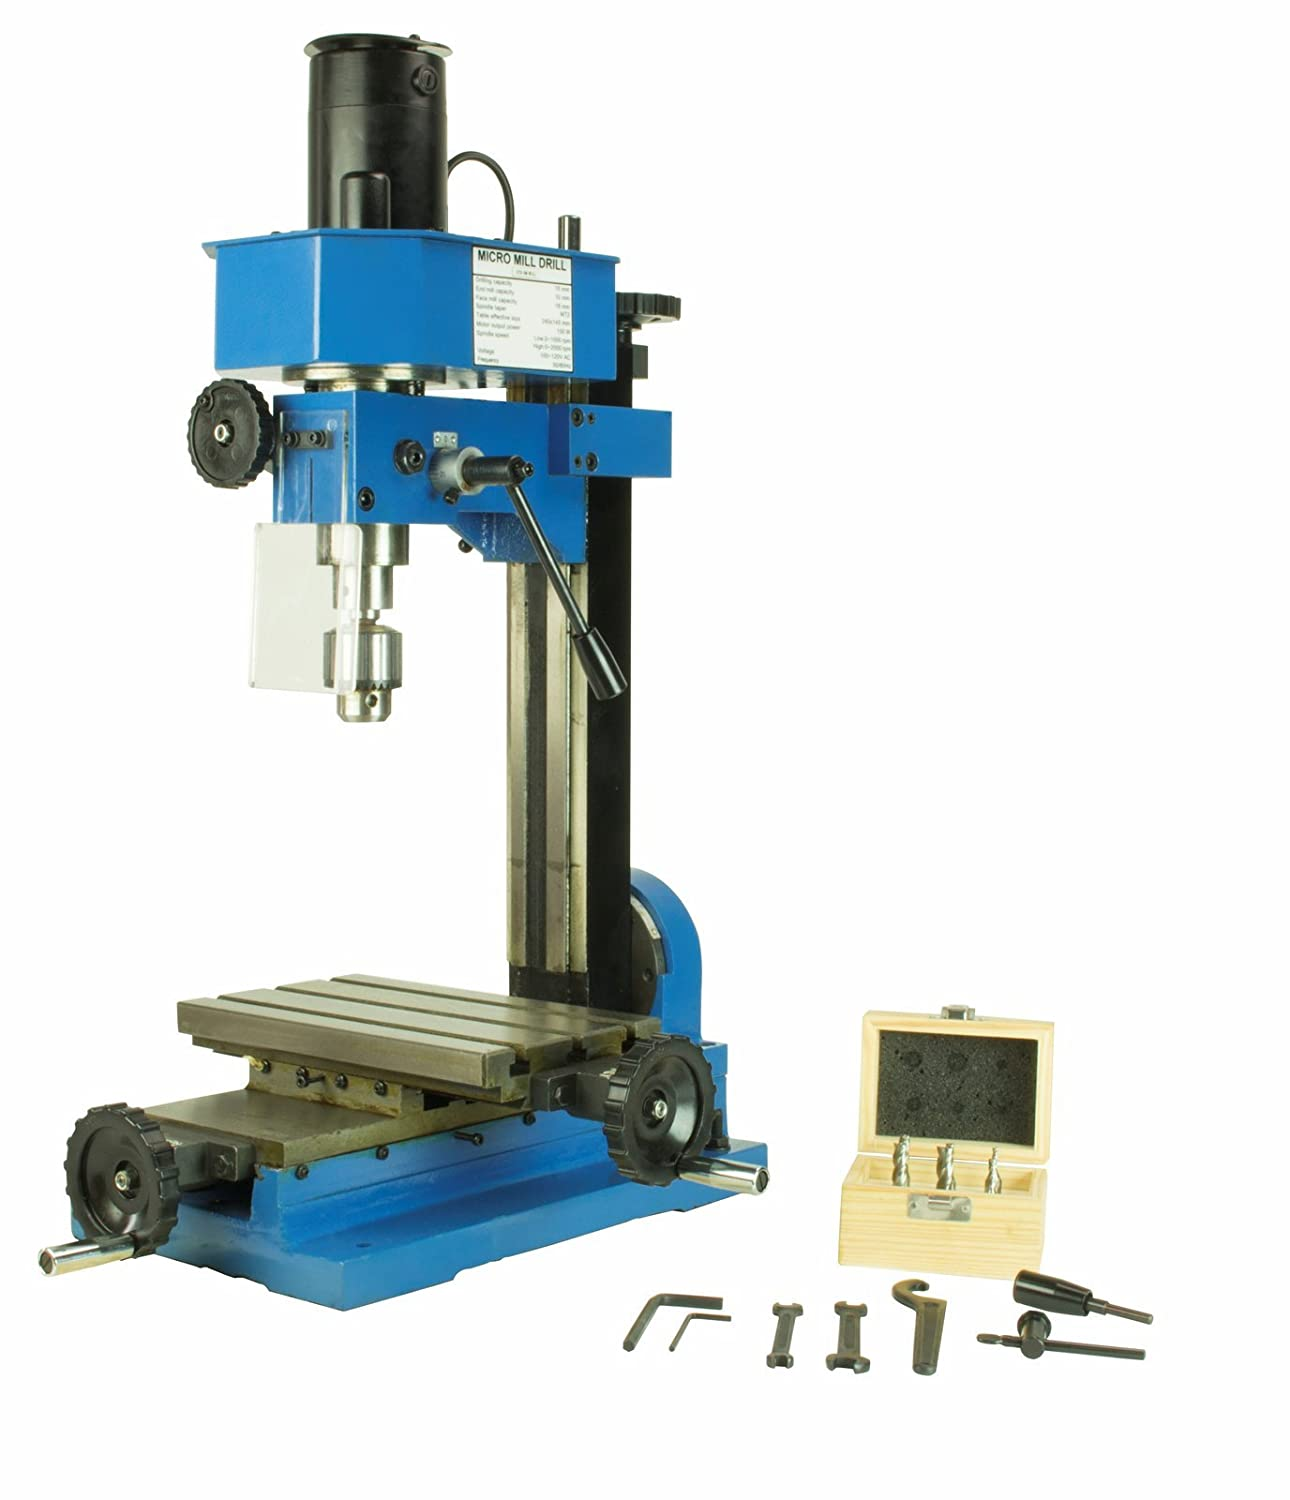 Power Metal Lathes Hand Tools Fan Speed Controller The Hobbymachinist Friendly Machinist Erie Variable Mini Milling Machine Benchtop Drilling And Machining Gear Driven With Adjustable Depth